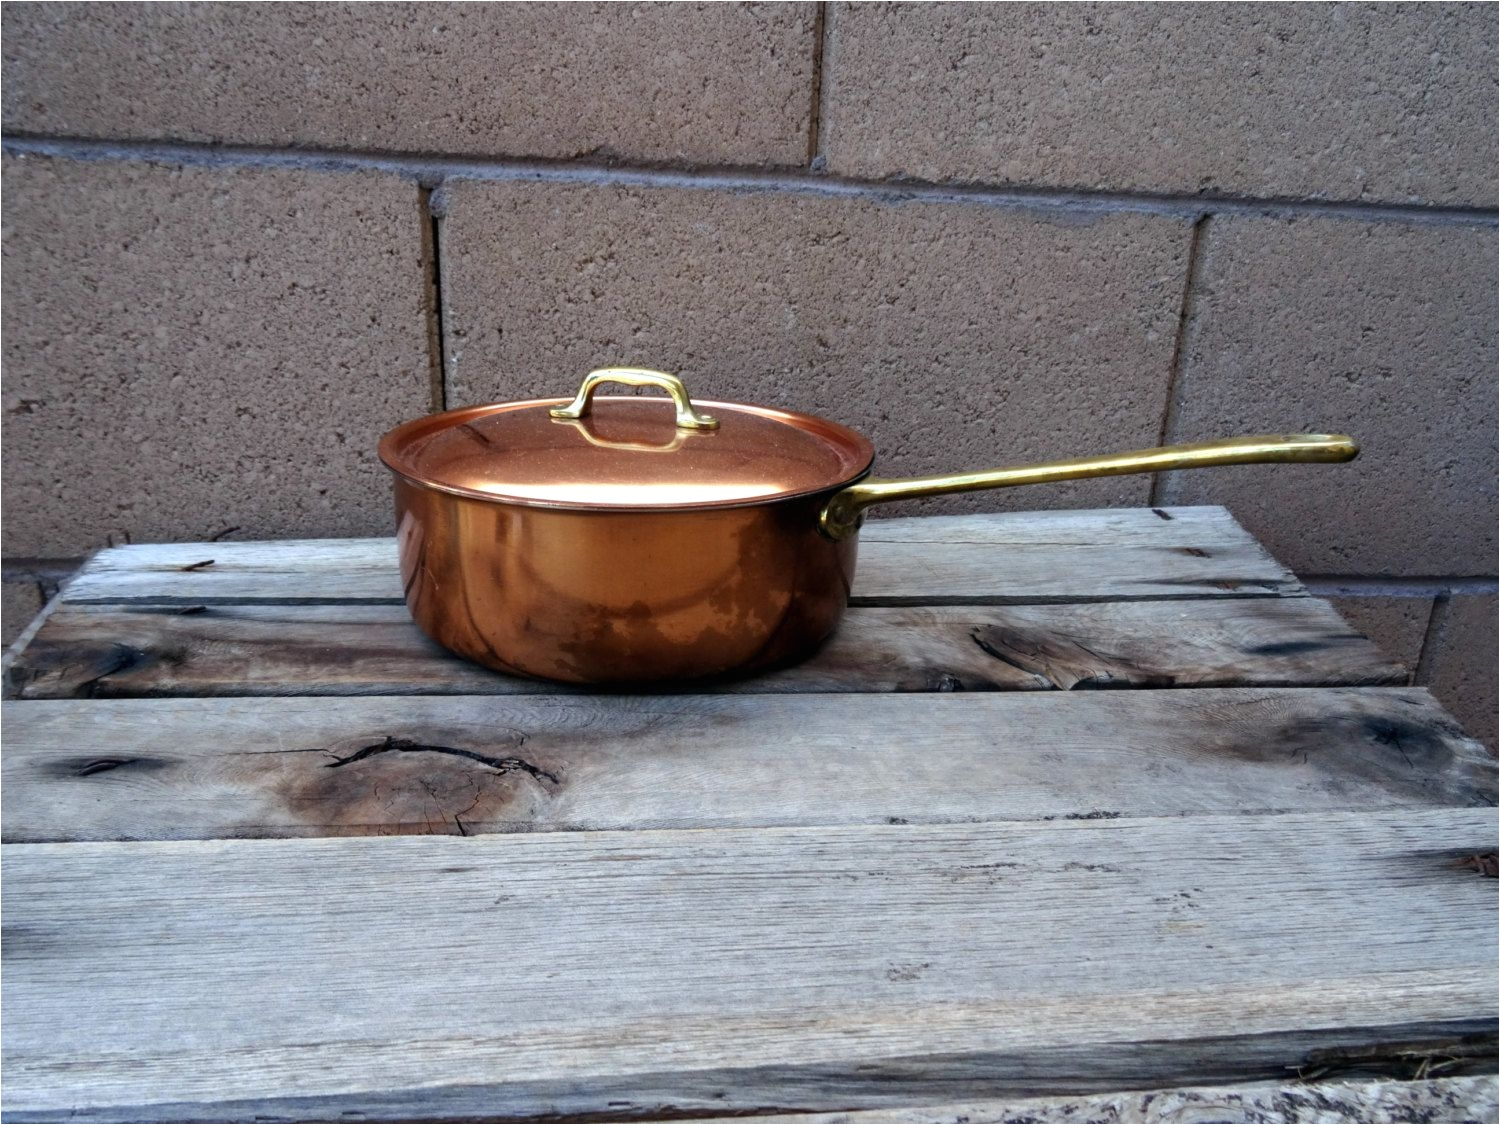 vintage copper sauce pan lidded copper copper pot french kitchen style copper cookware copper 1 1 2 quart pan mediterranean kitchen